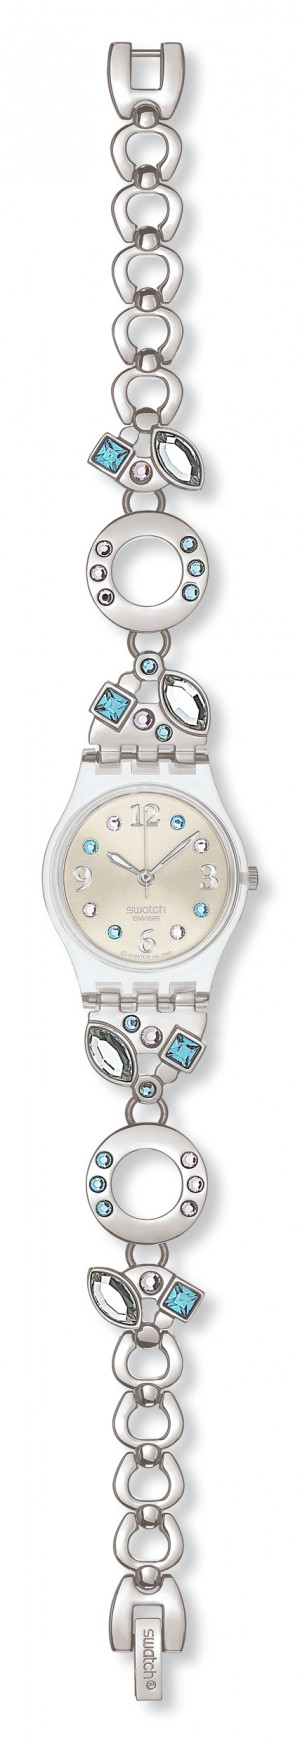 Swatch Menthol Tone